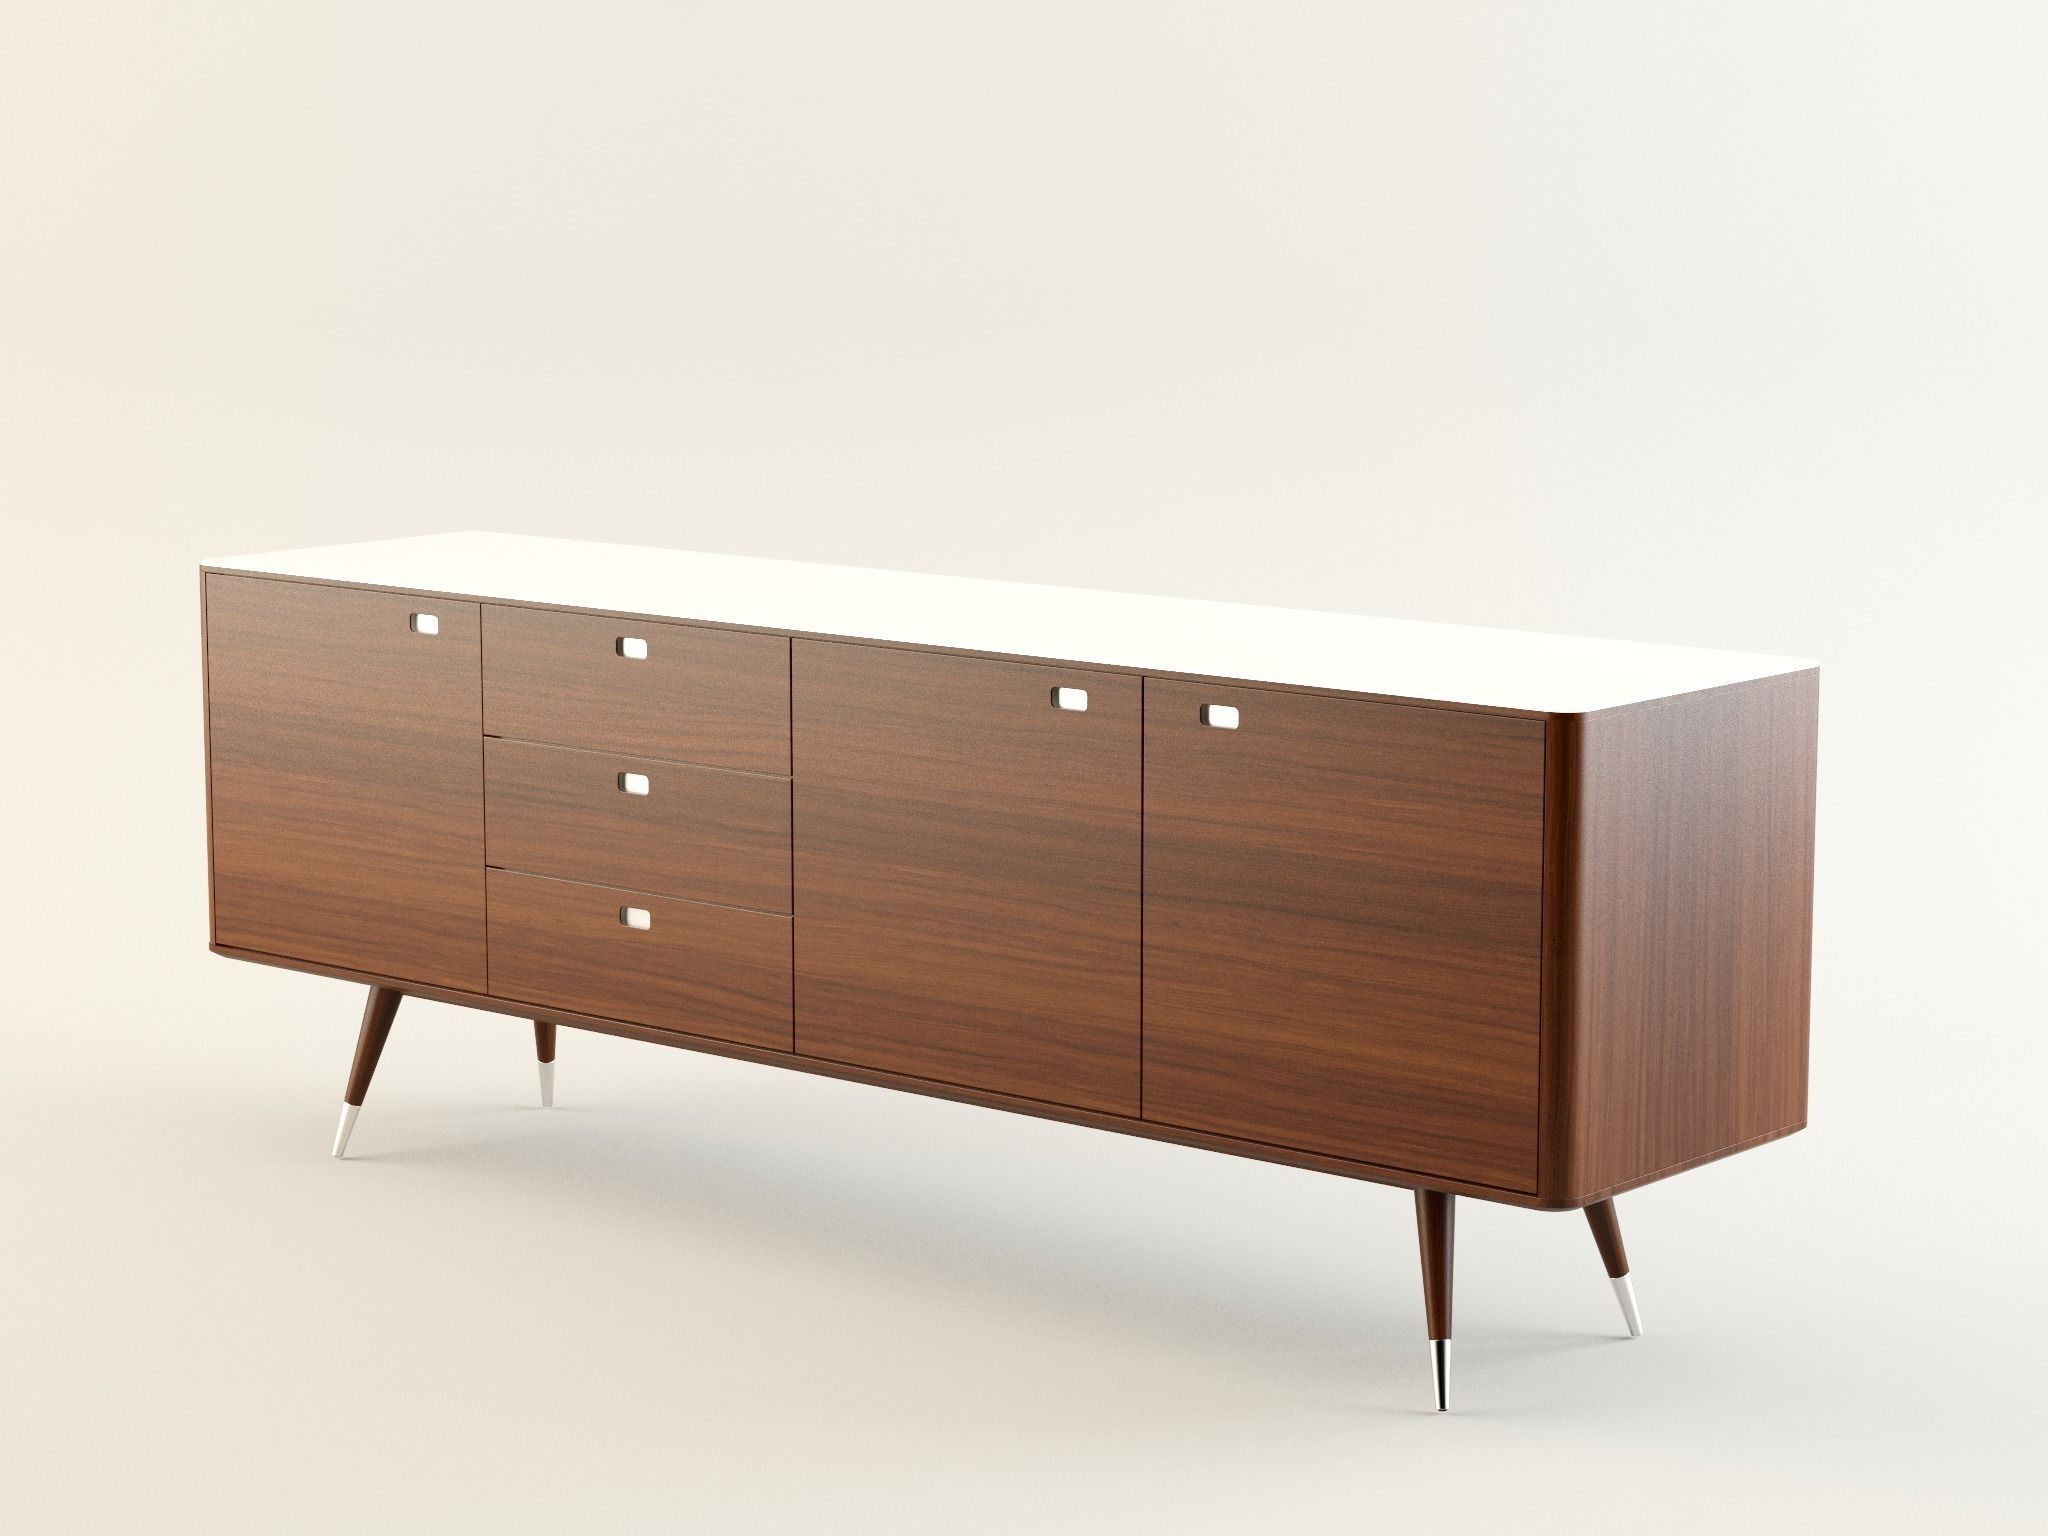 Danish Retro Sideboard 3D | Cgtrader In Danish Retro Sideboards (View 2 of 20)